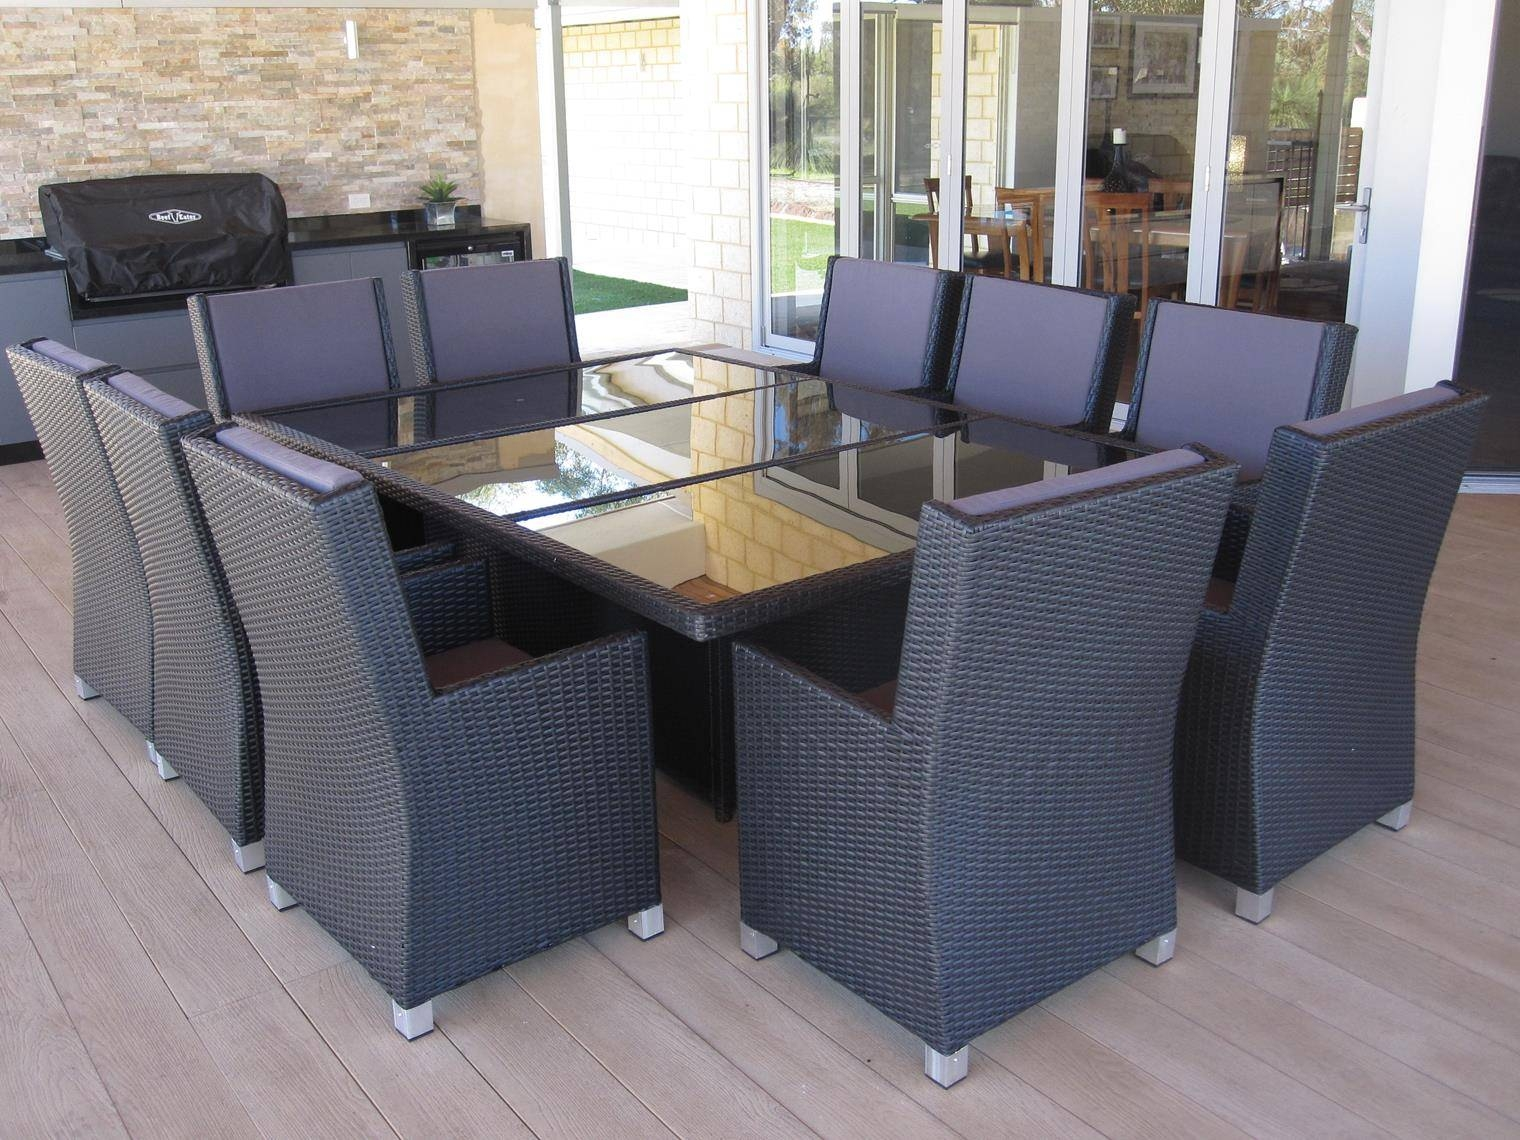 Outdoor Furniture Perth – Goodworksfurniture with regard to Outdoor Sofa Chairs (Image 20 of 30)